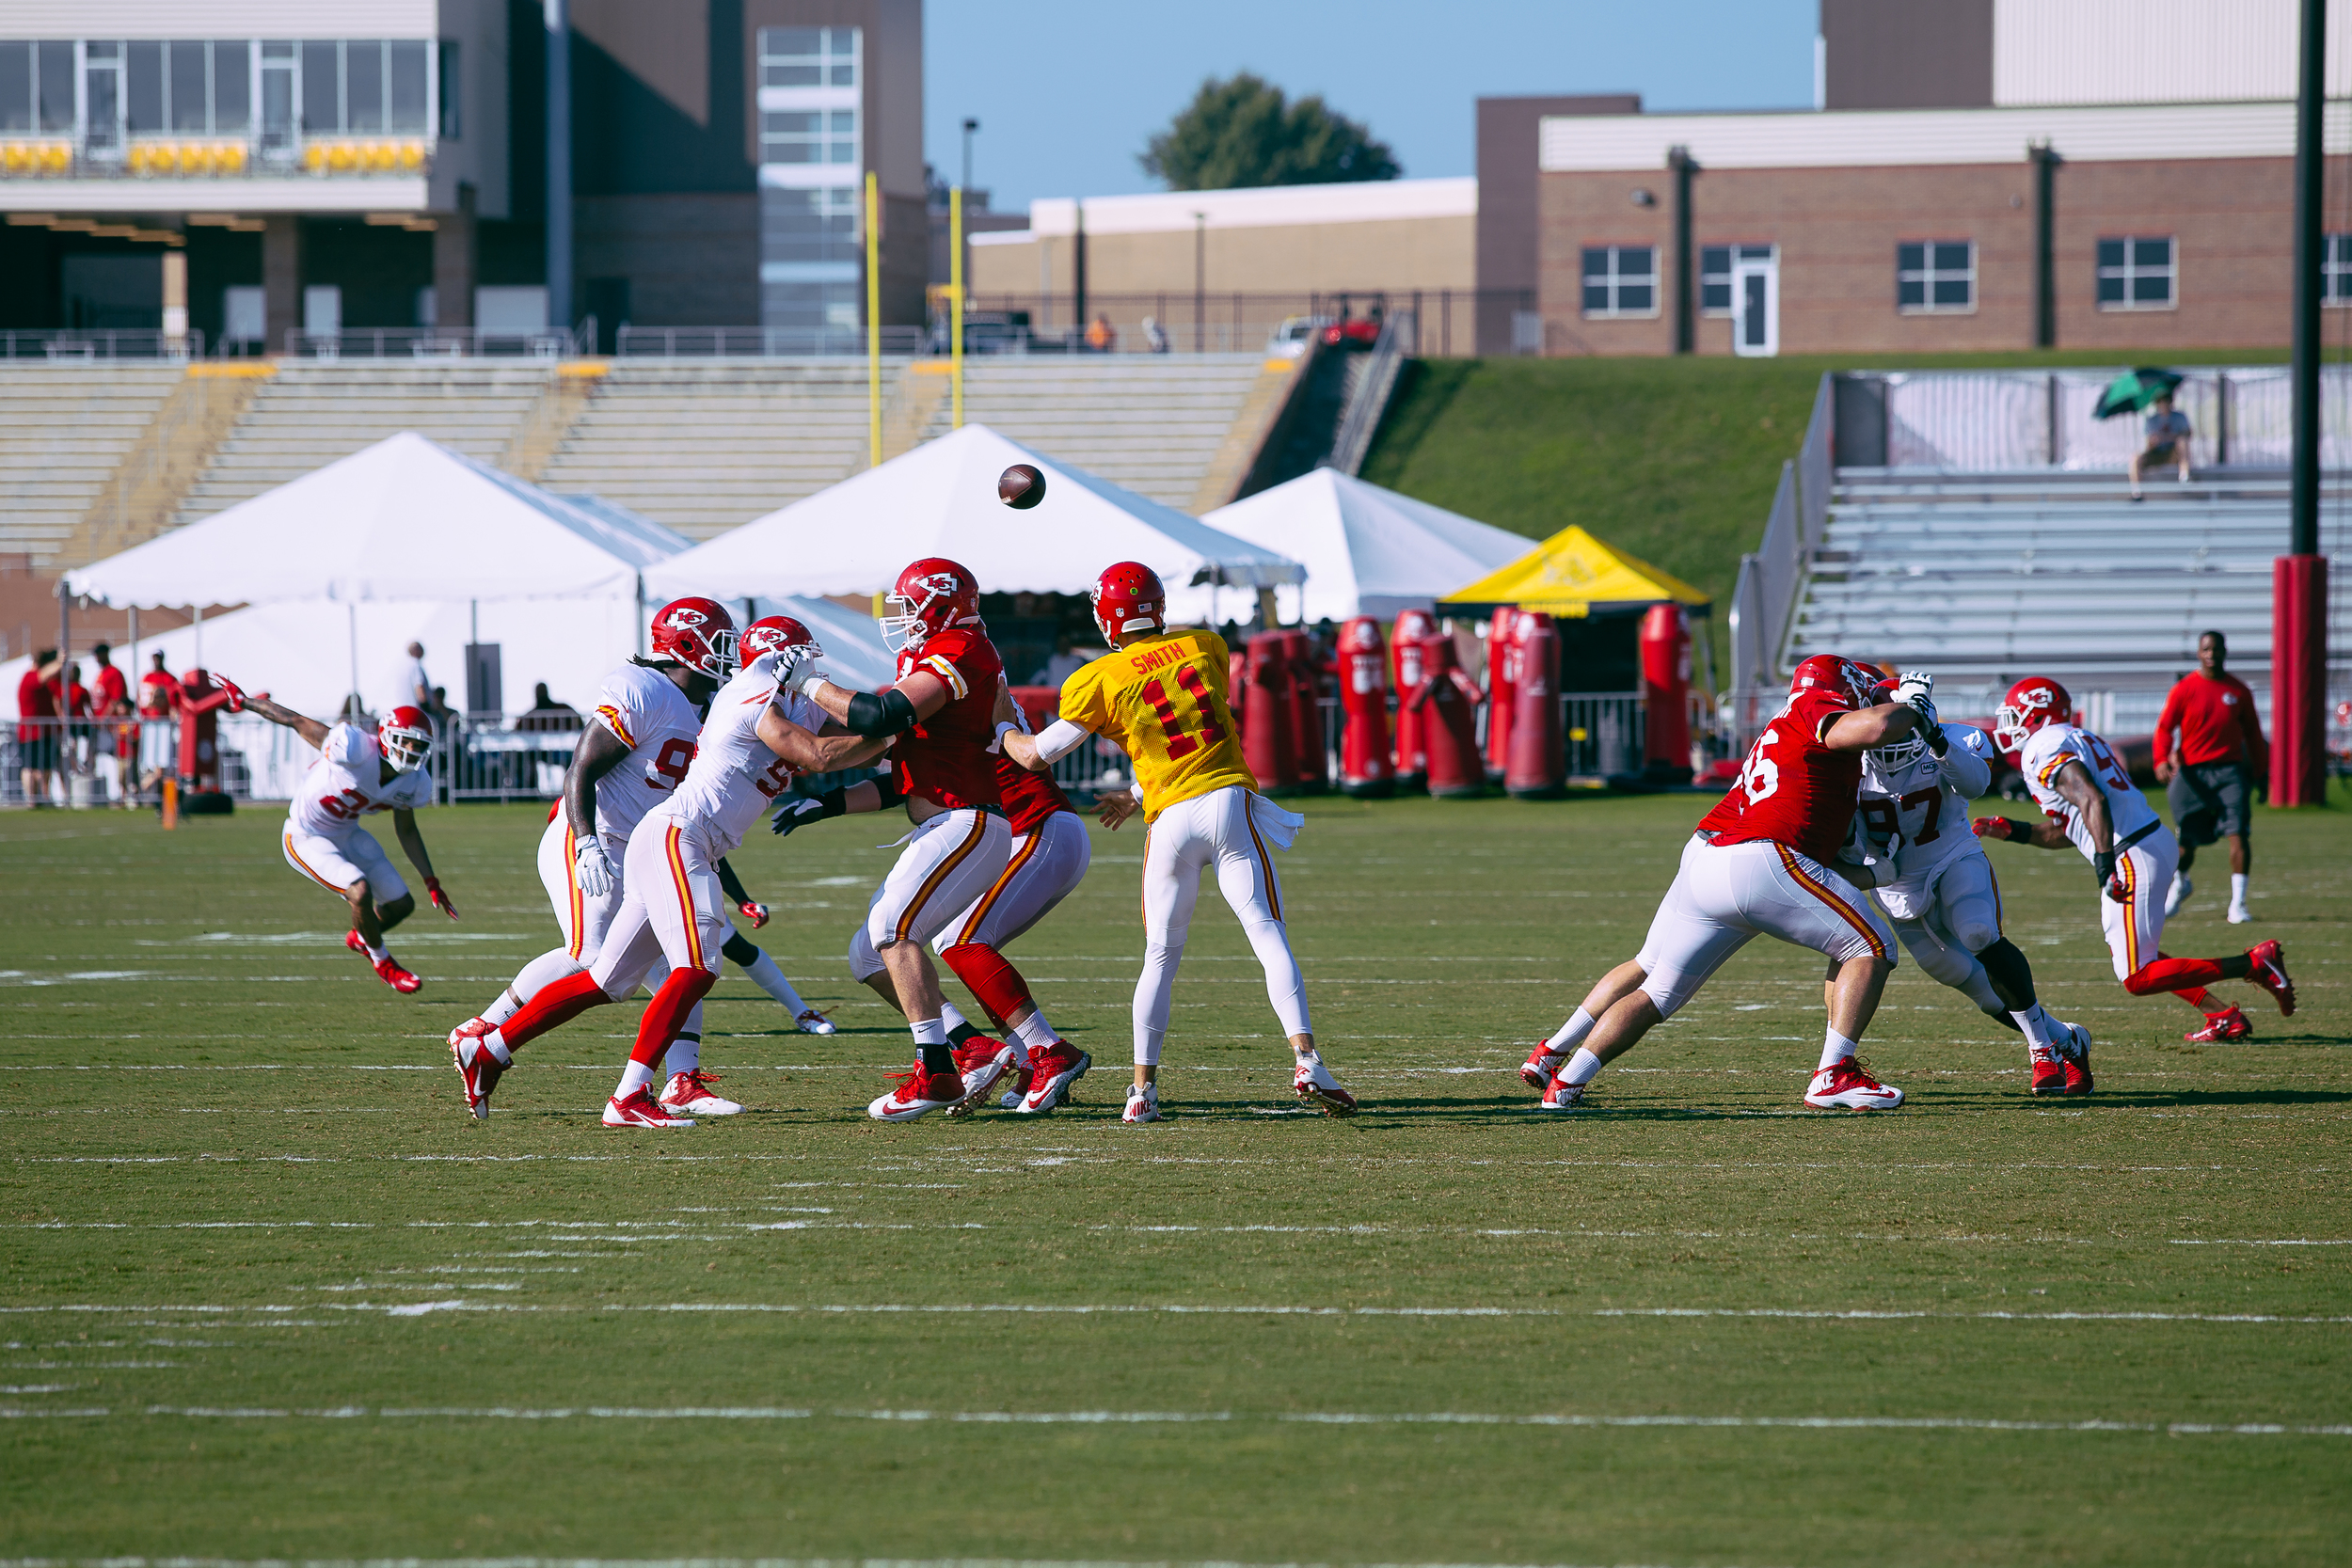 Chiefs Training Camp - Pitch - 10.jpg